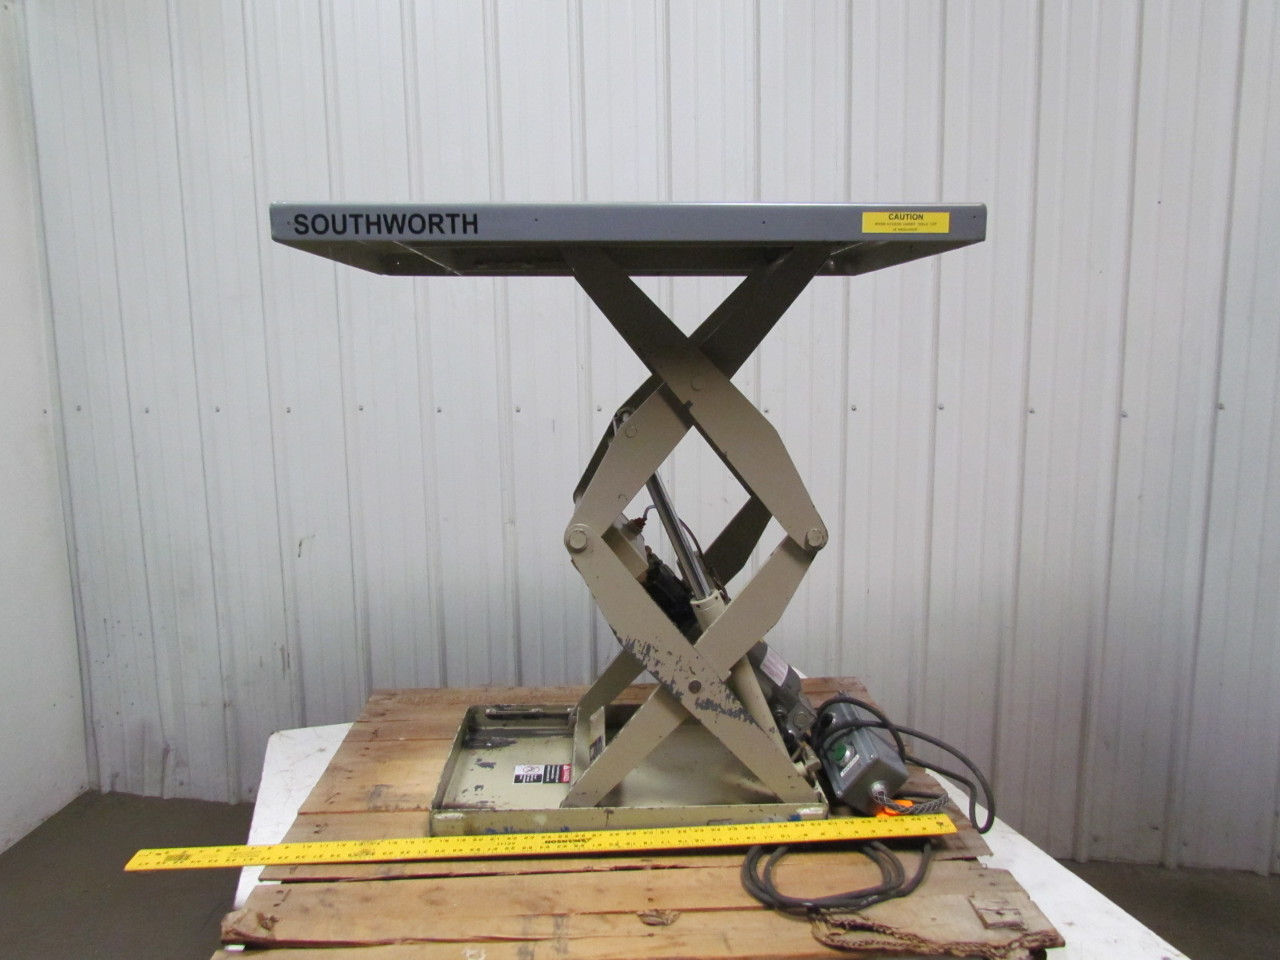 Southworth lift table wiring diagram image collections wiring southworth lift table wiring diagram image collections wiring grizzly scissor lift table i built an industrial greentooth Image collections